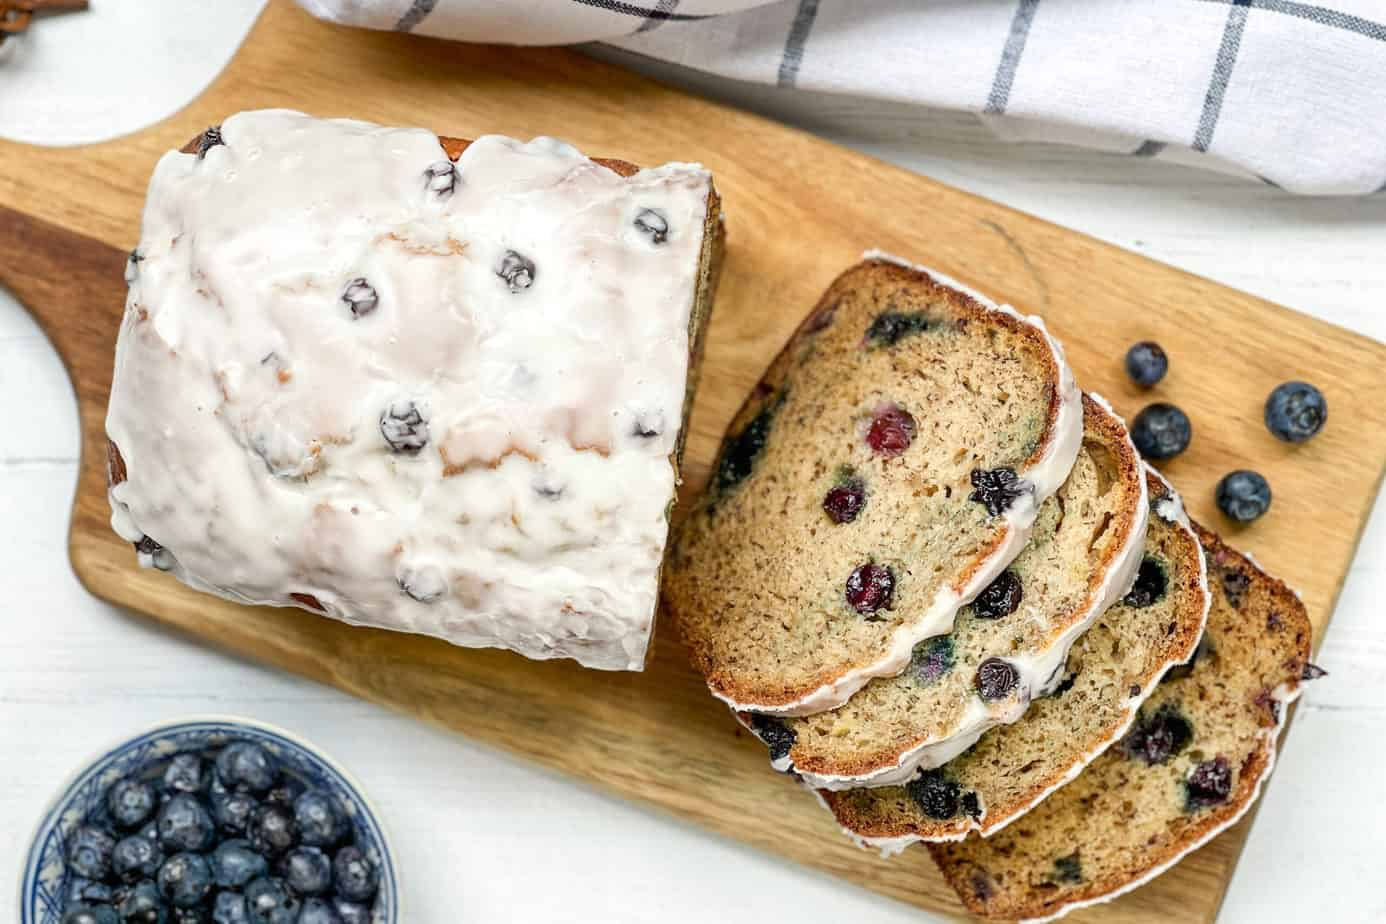 Sliced Blueberry Banana Bread on a wood cutting board with fresh blueberries.